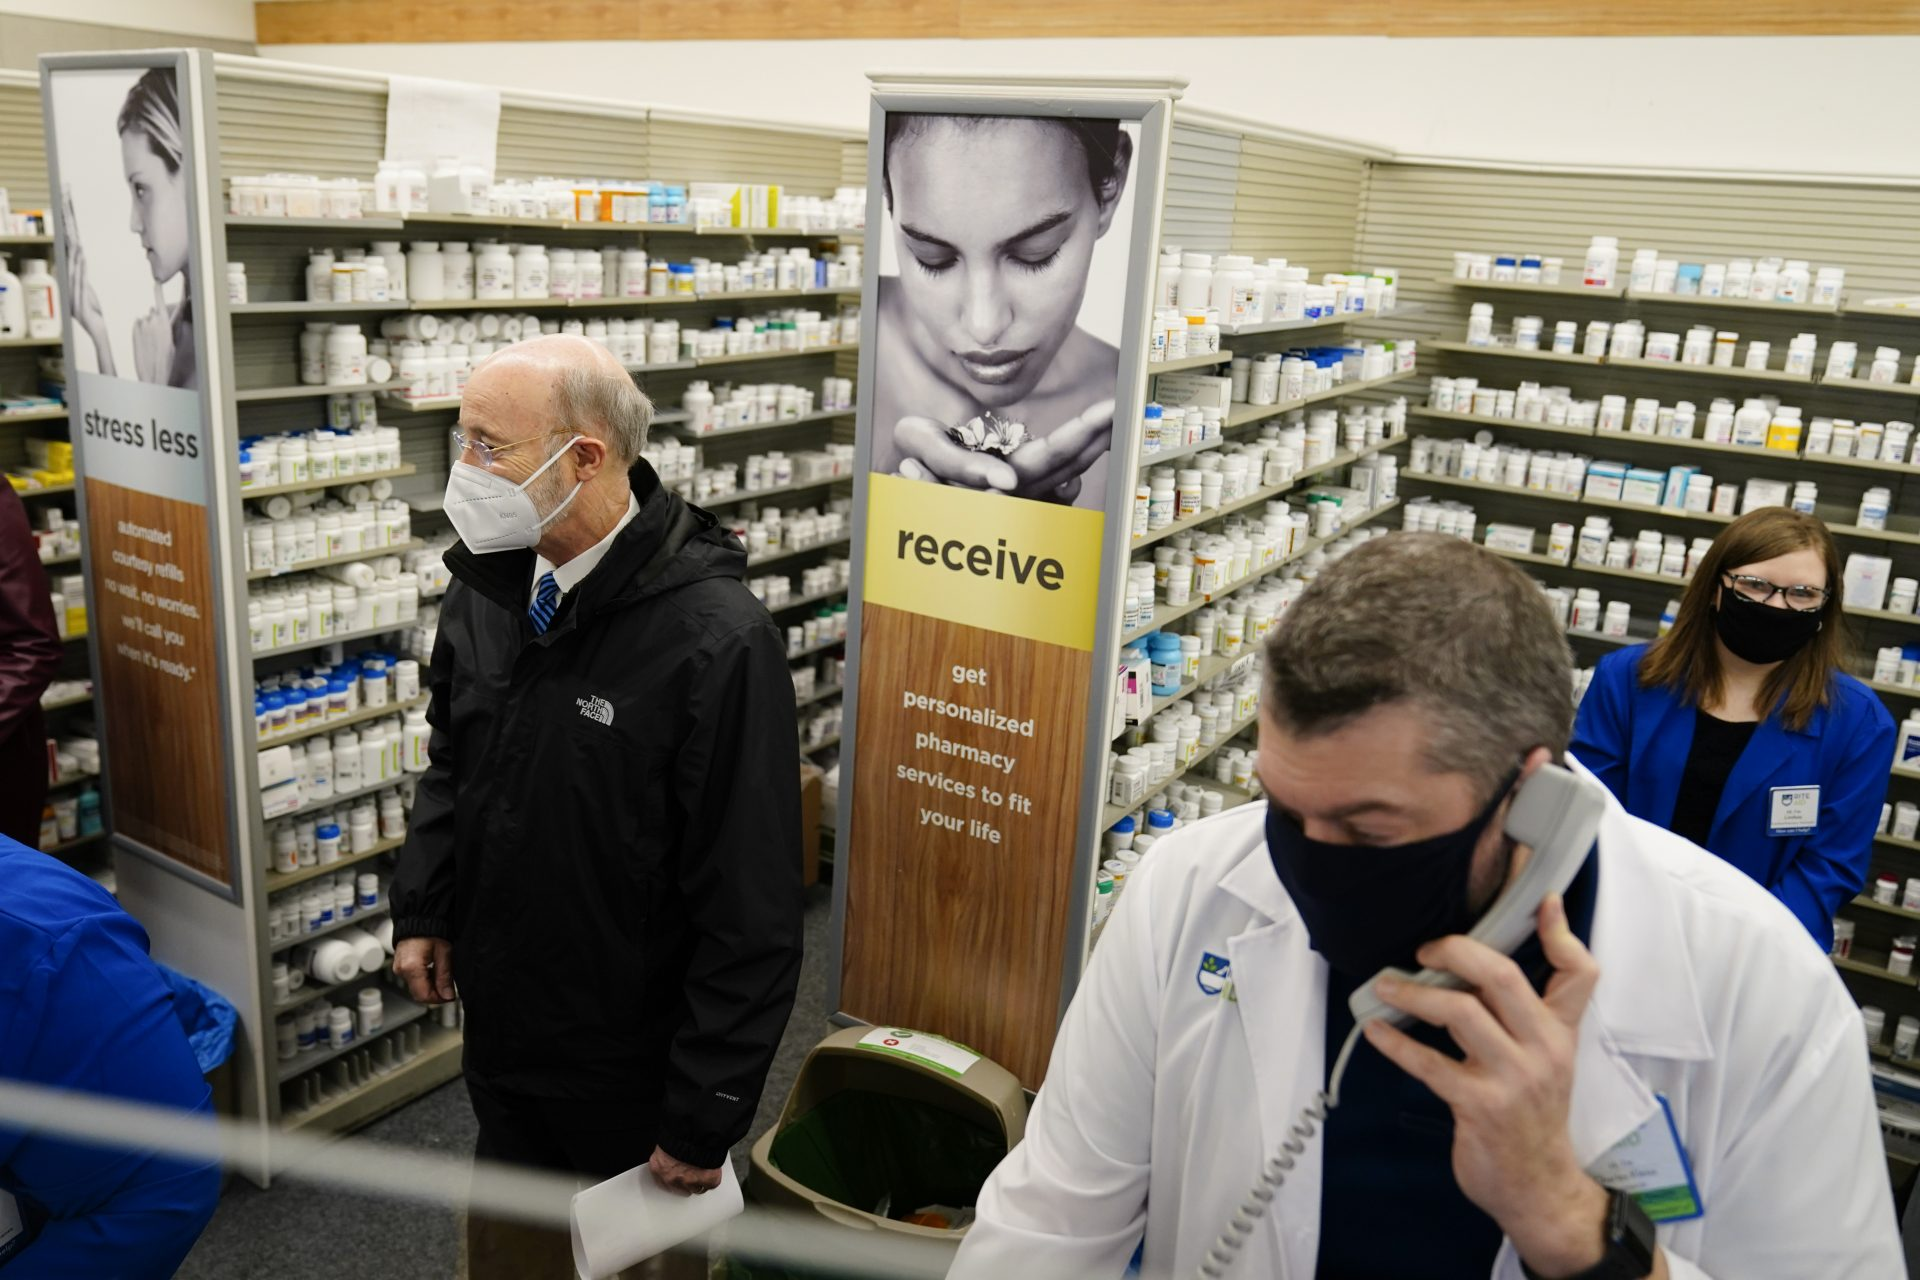 Gov. Tom Wolf tours a Rite-Aid pharmacy in Steelton, Pa., that is administering COVID-19 vaccinations, Friday, March 5, 2021.